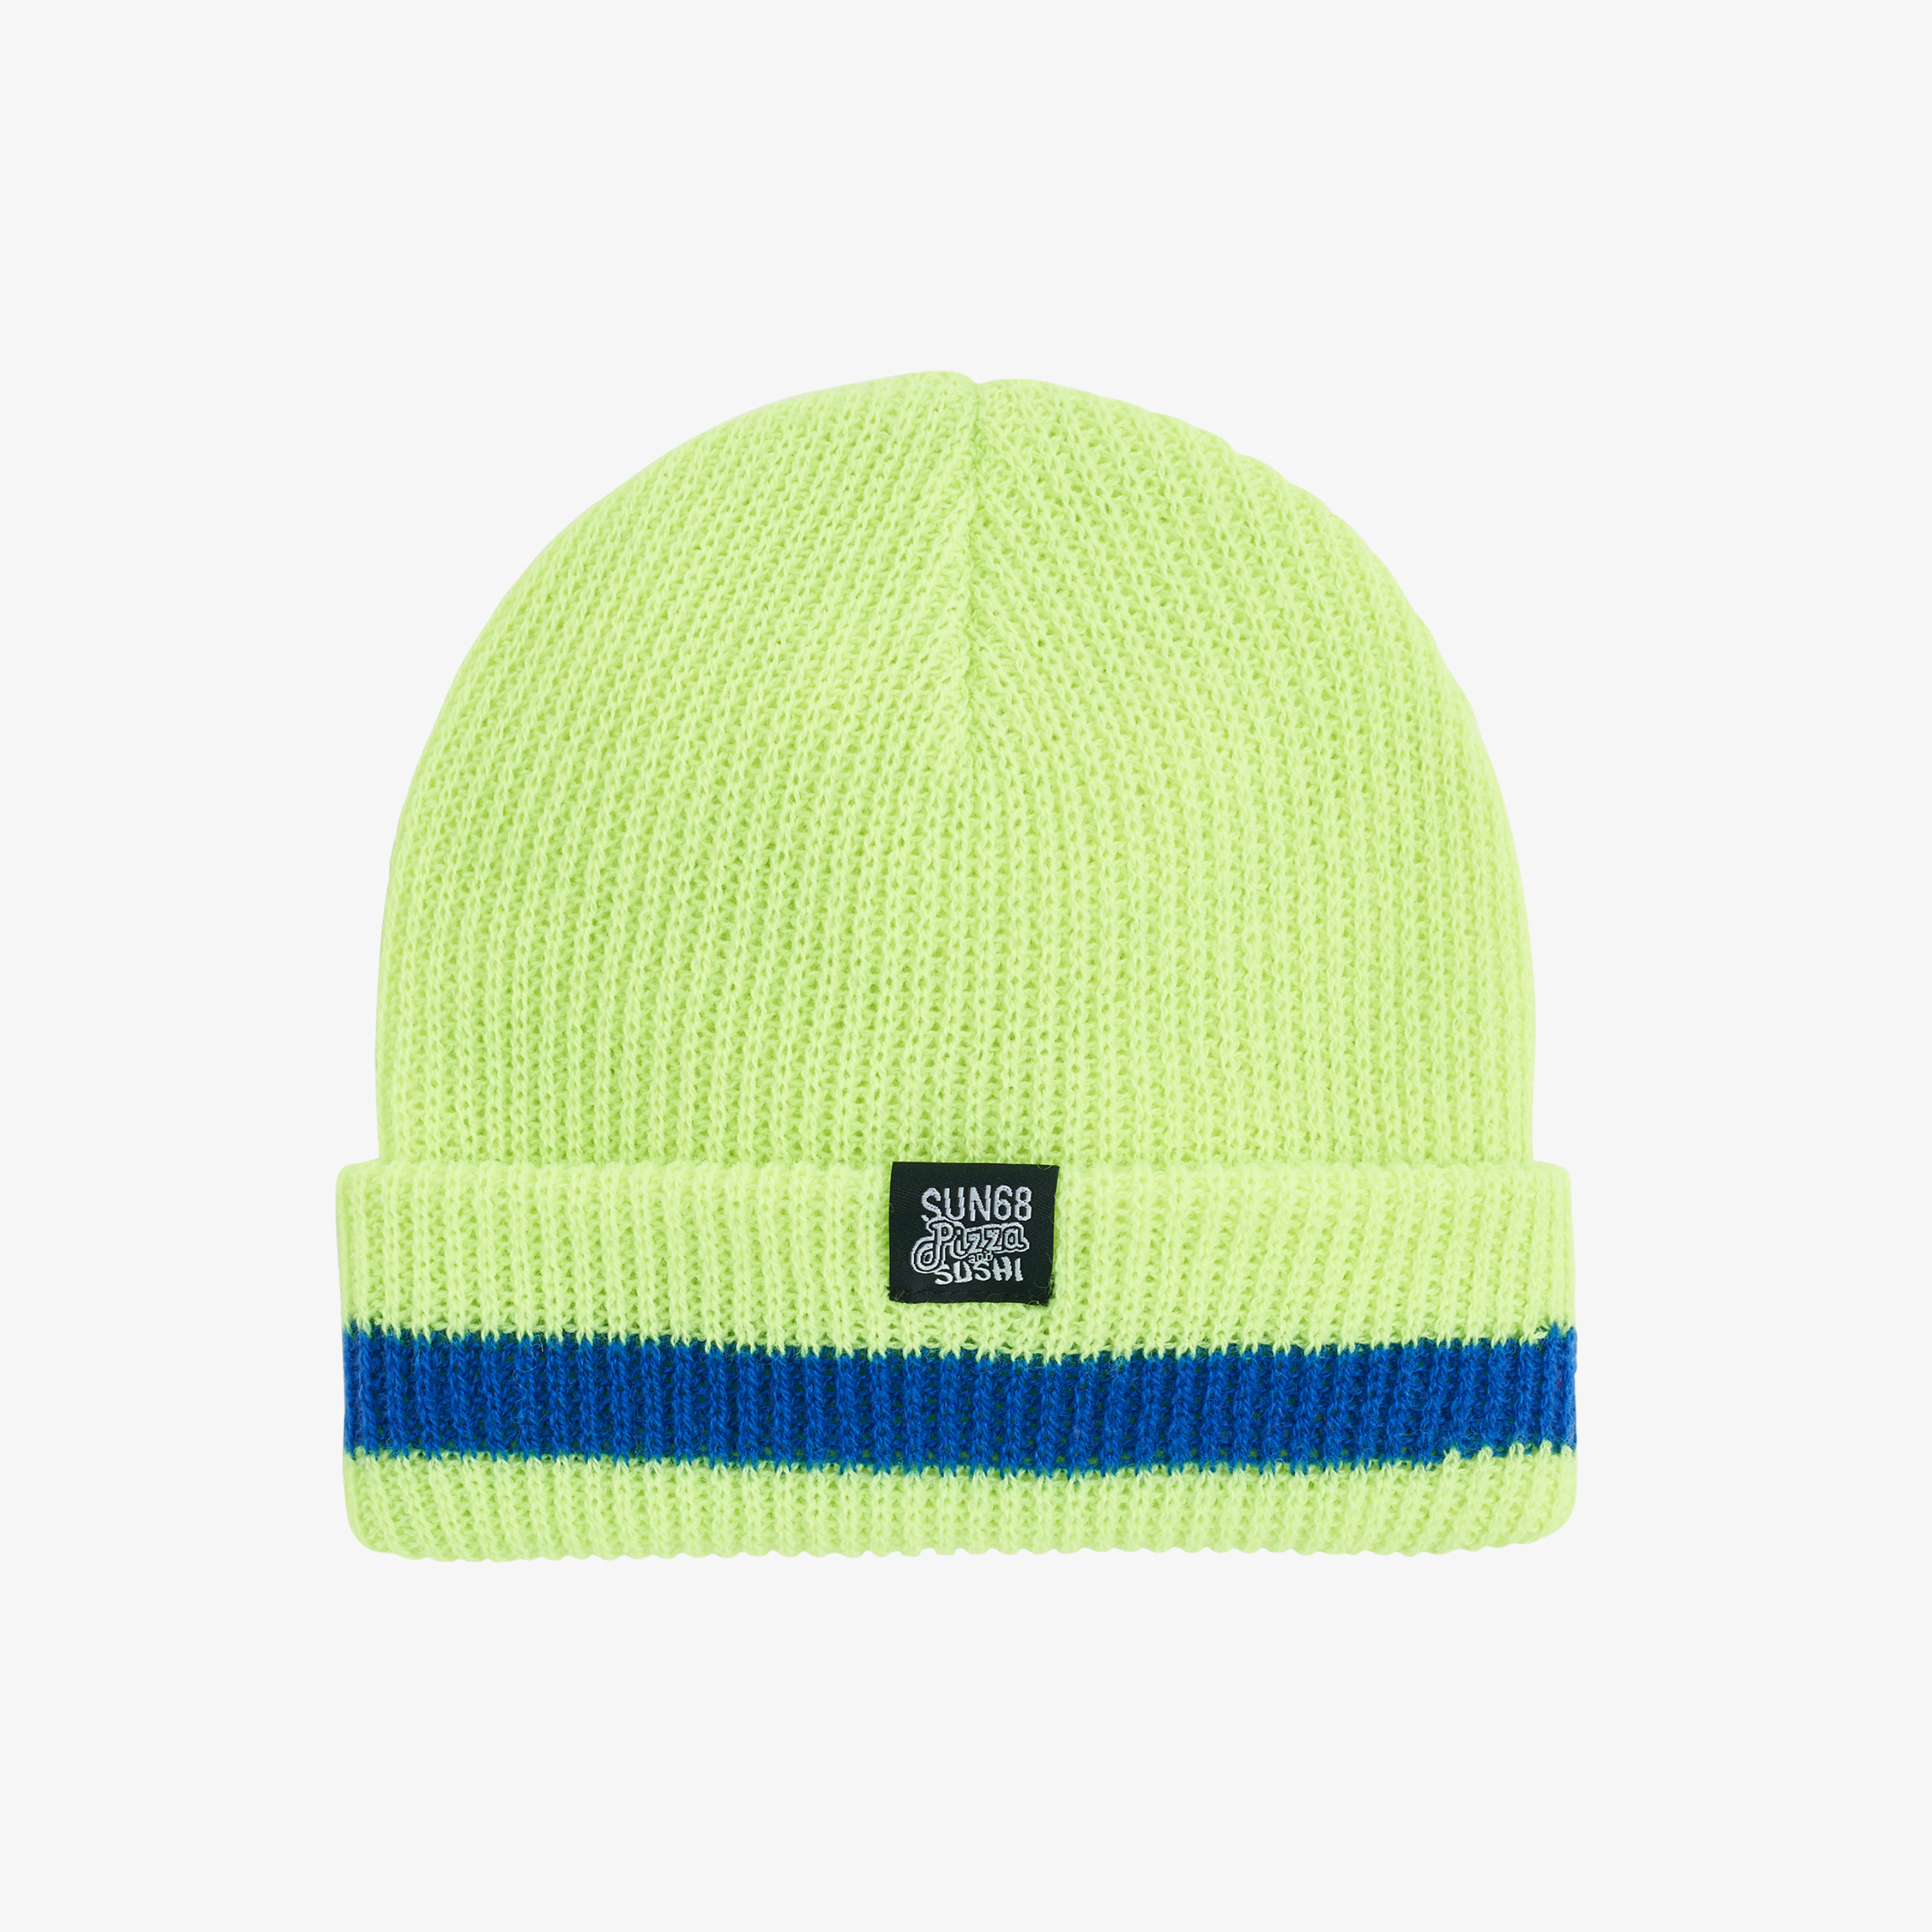 BOY'S CAP SOLID FLUO DETAILS GIALLO FLUO